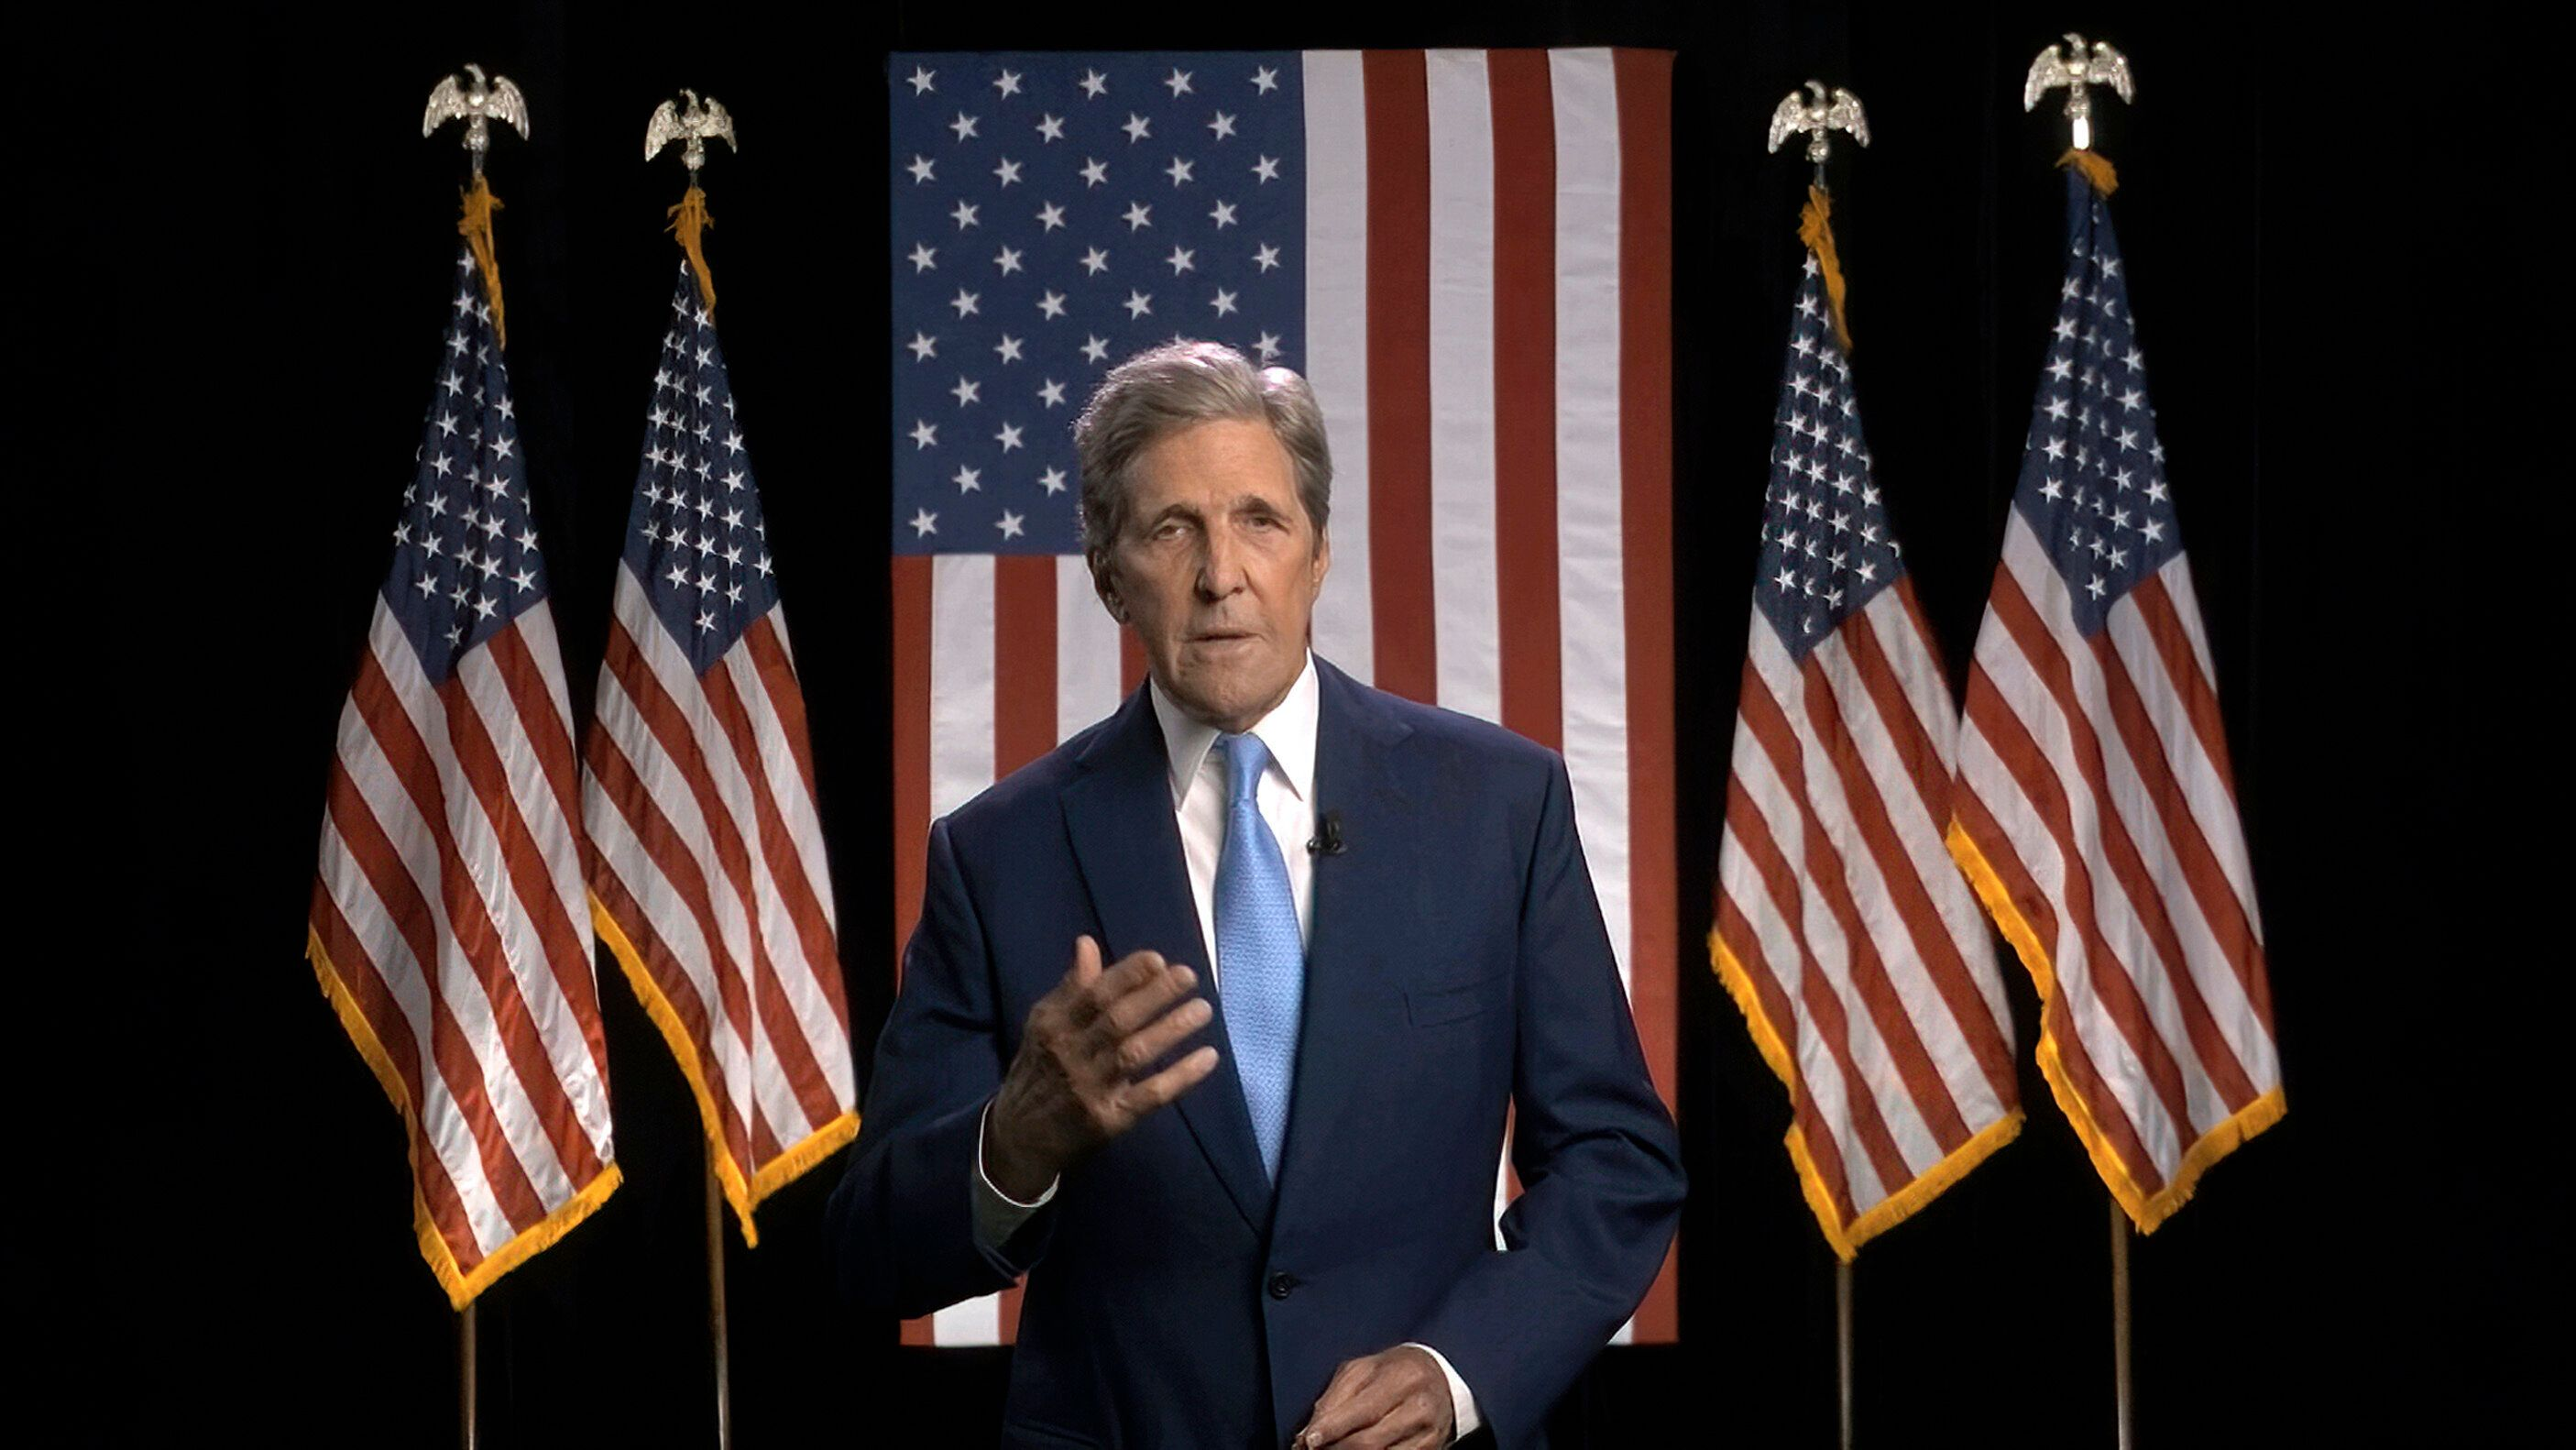 Former Secretary of State John Kerry speaks via video during the second night of the Democratic National Convention on Tuesda